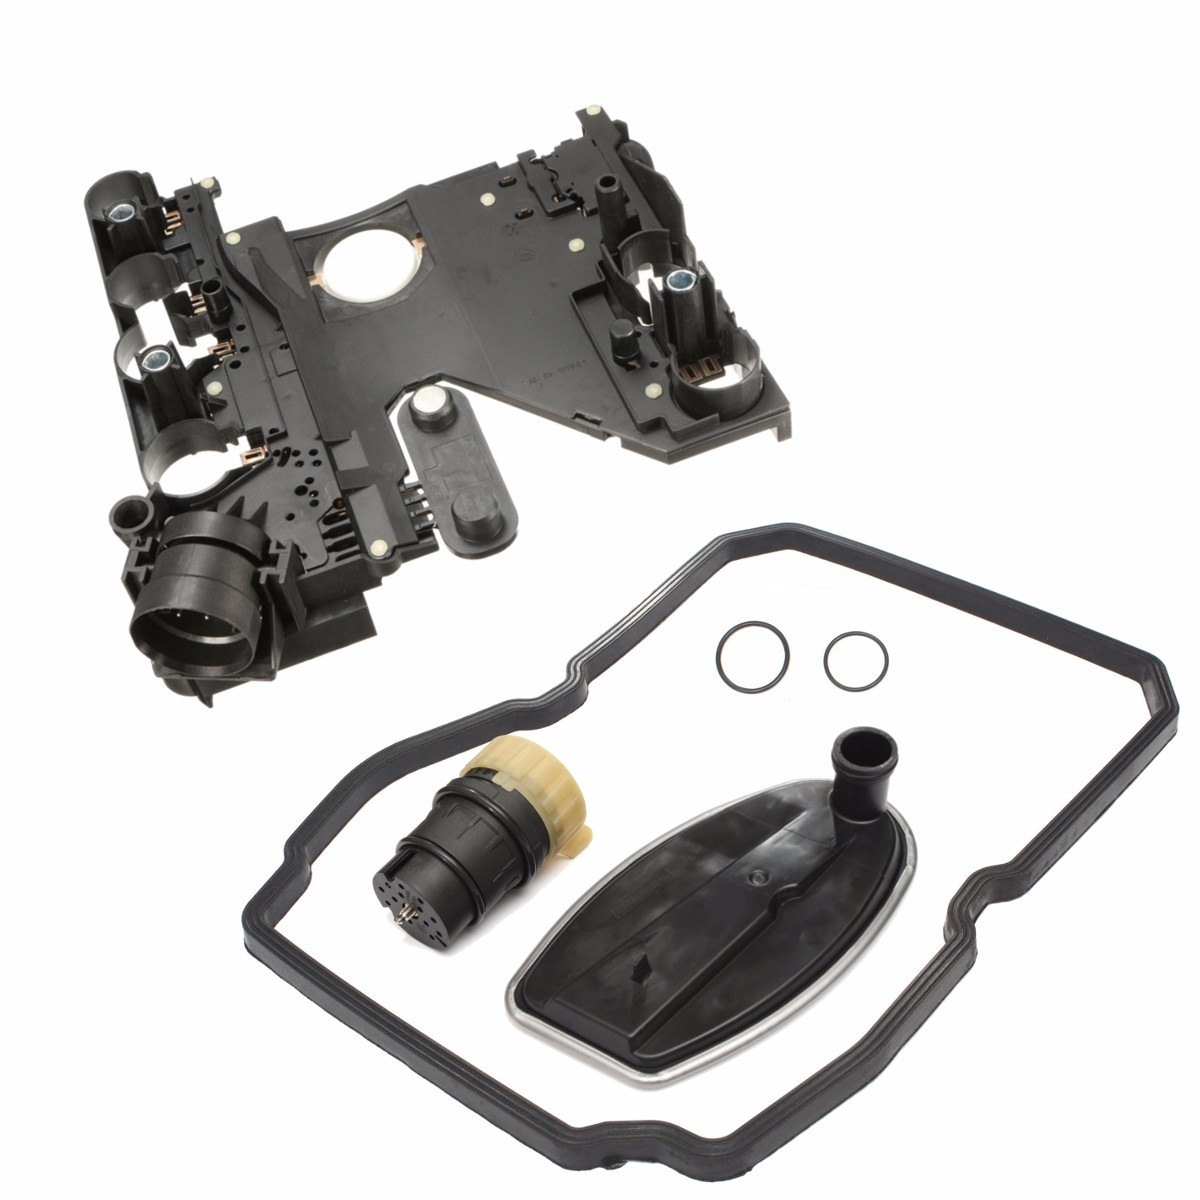 722 6 Gearbox Conductor Plate Connector Filter Kit for Benz for Mercedes 1402700161